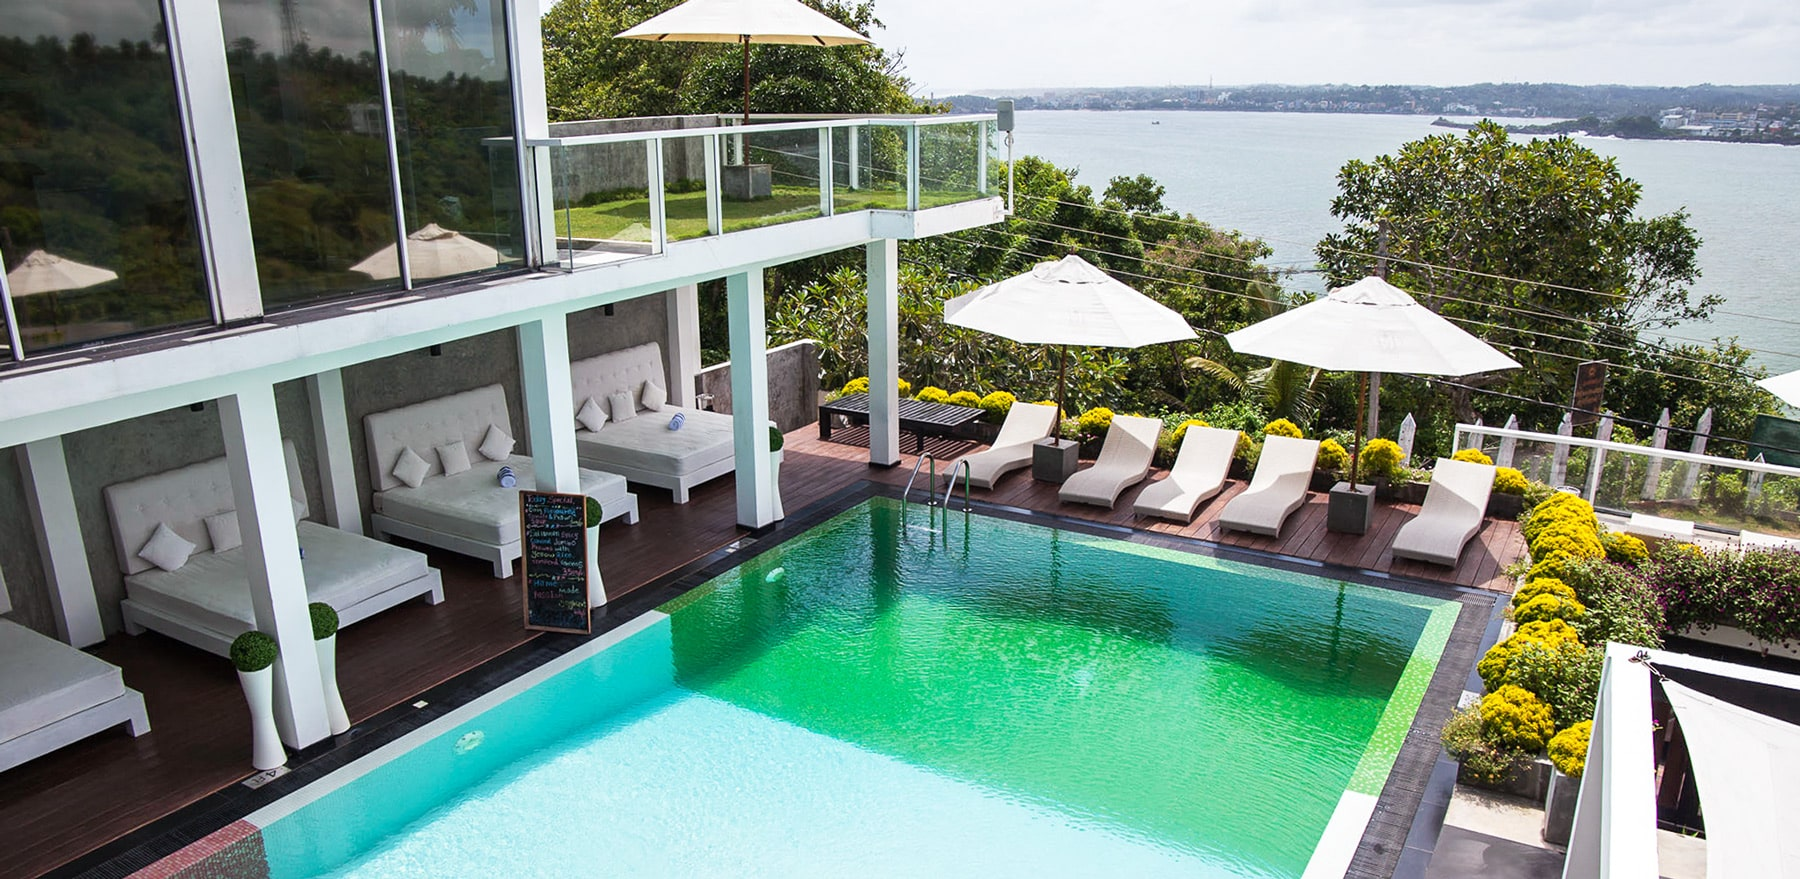 9 of the best hotels in sri lanka with incredible pools for Best hotel pools